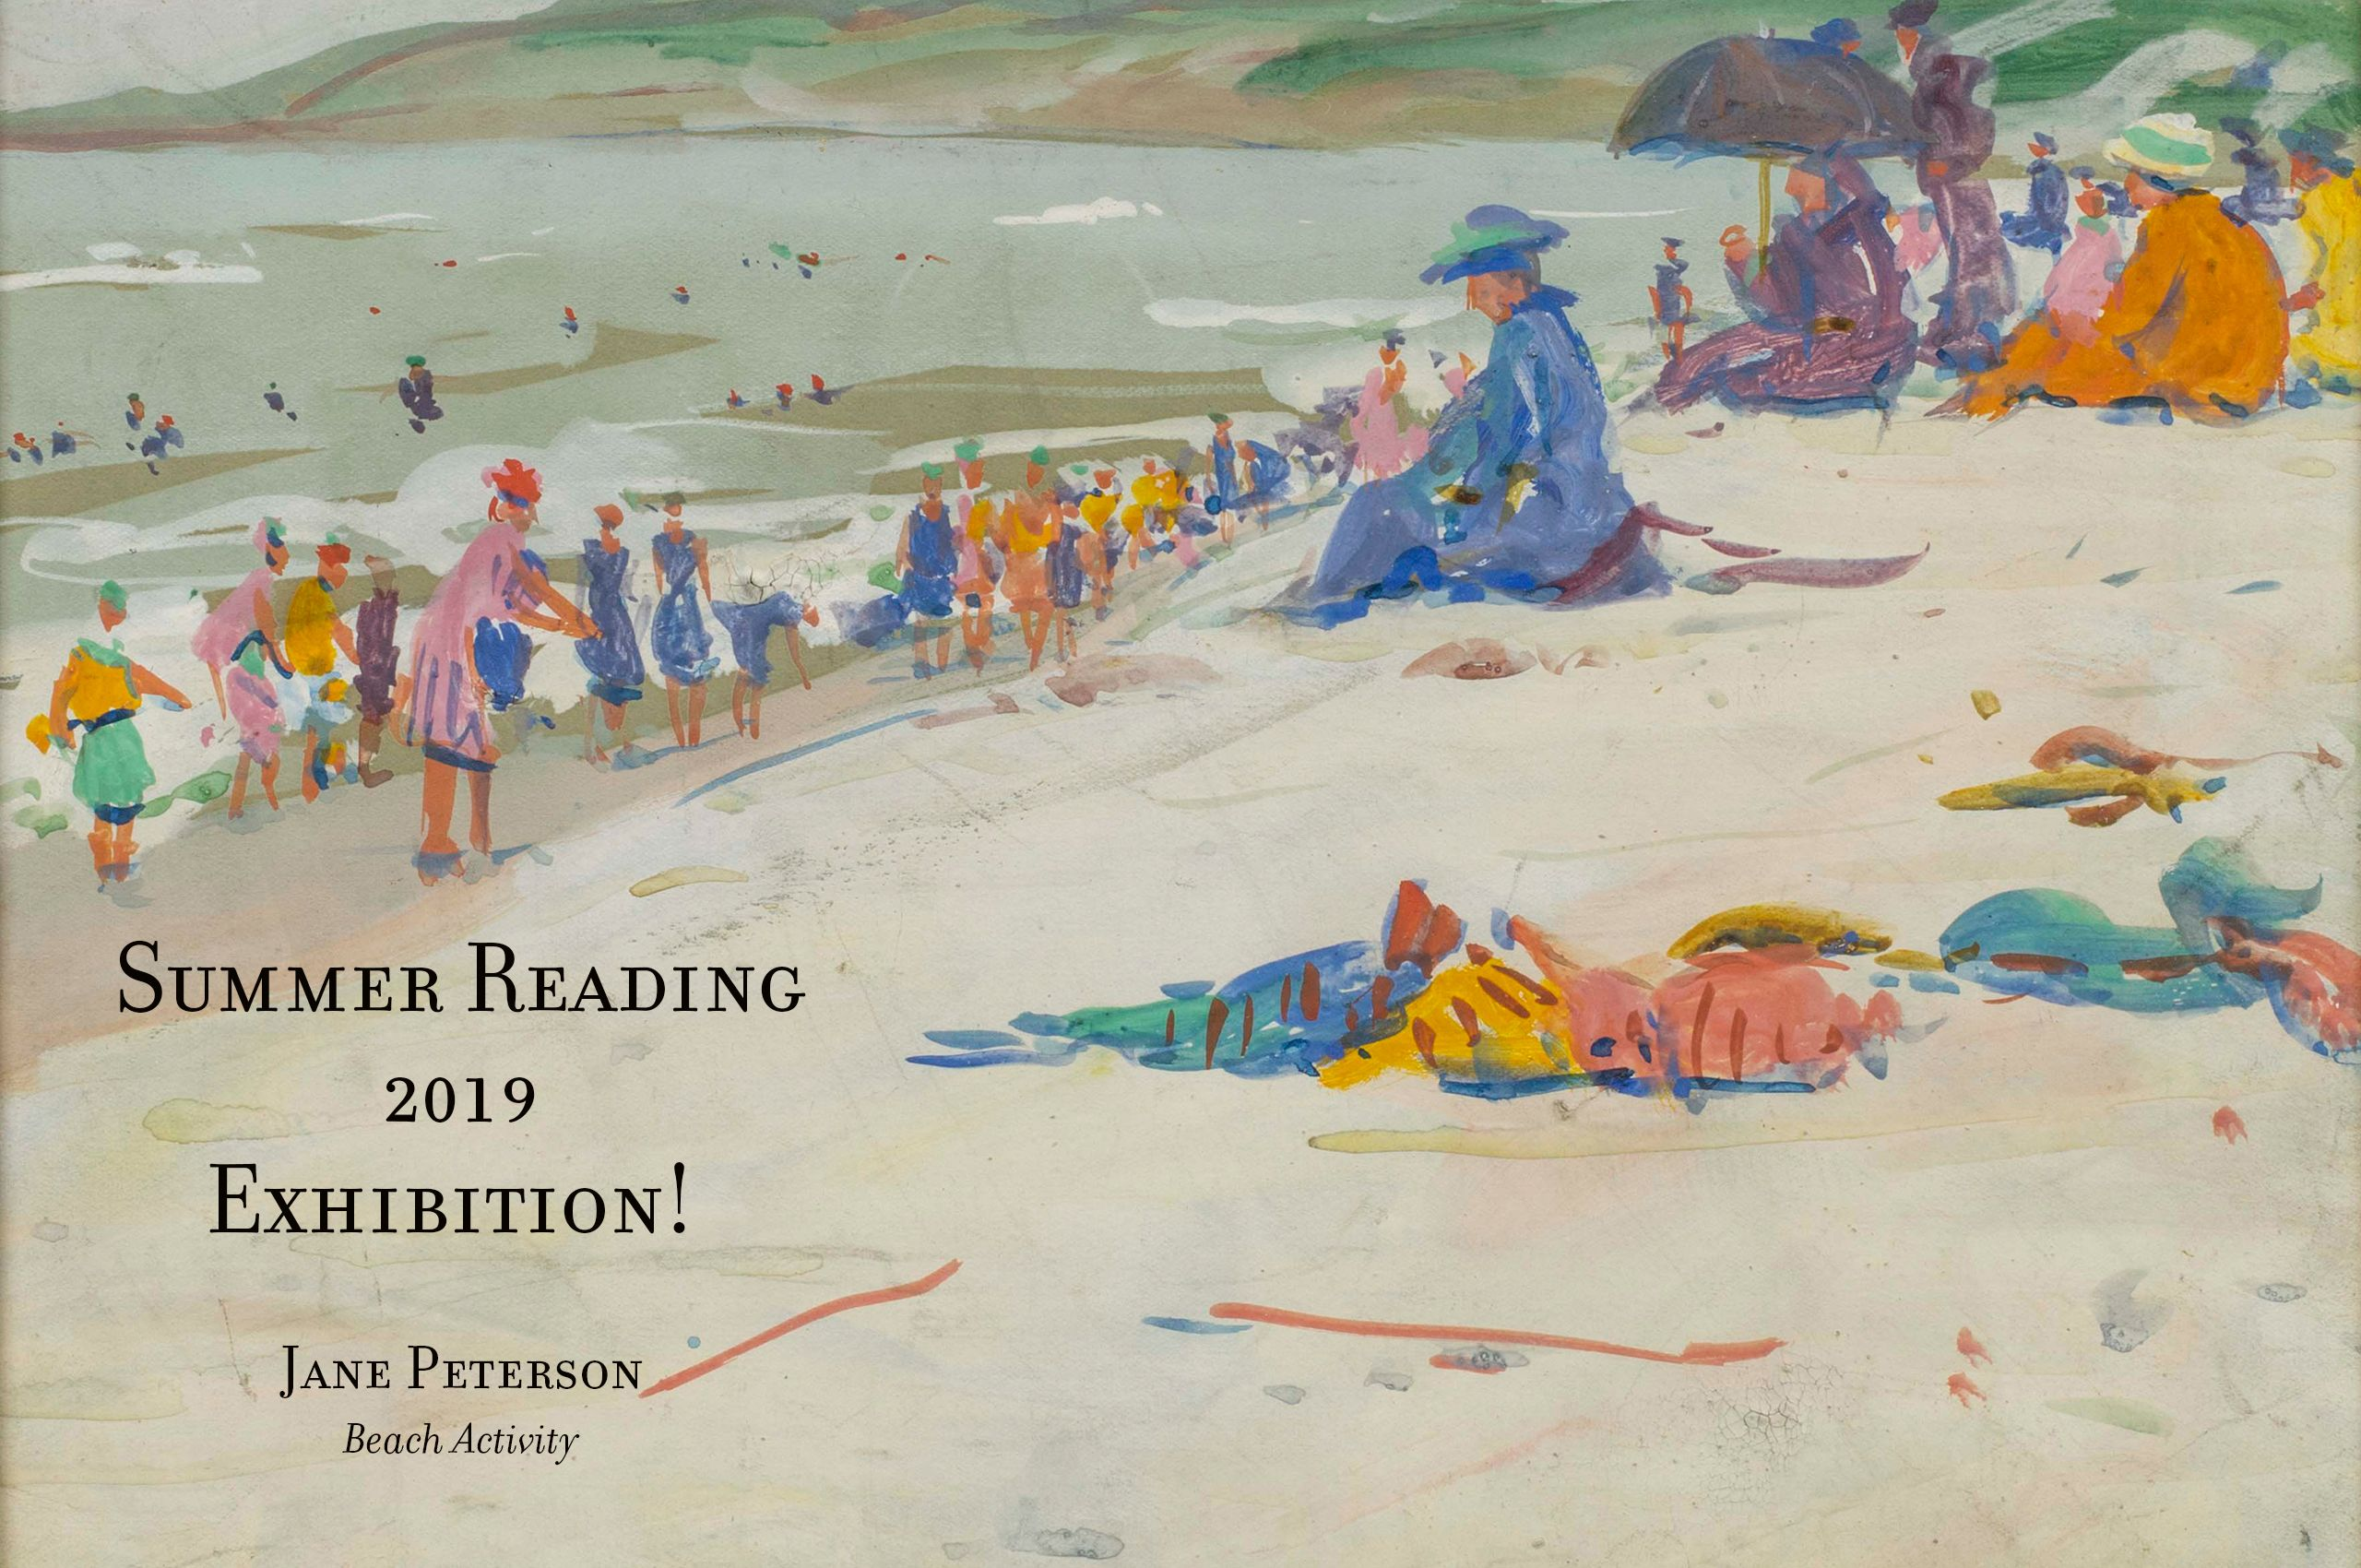 Summer Reading Exhibition 2019